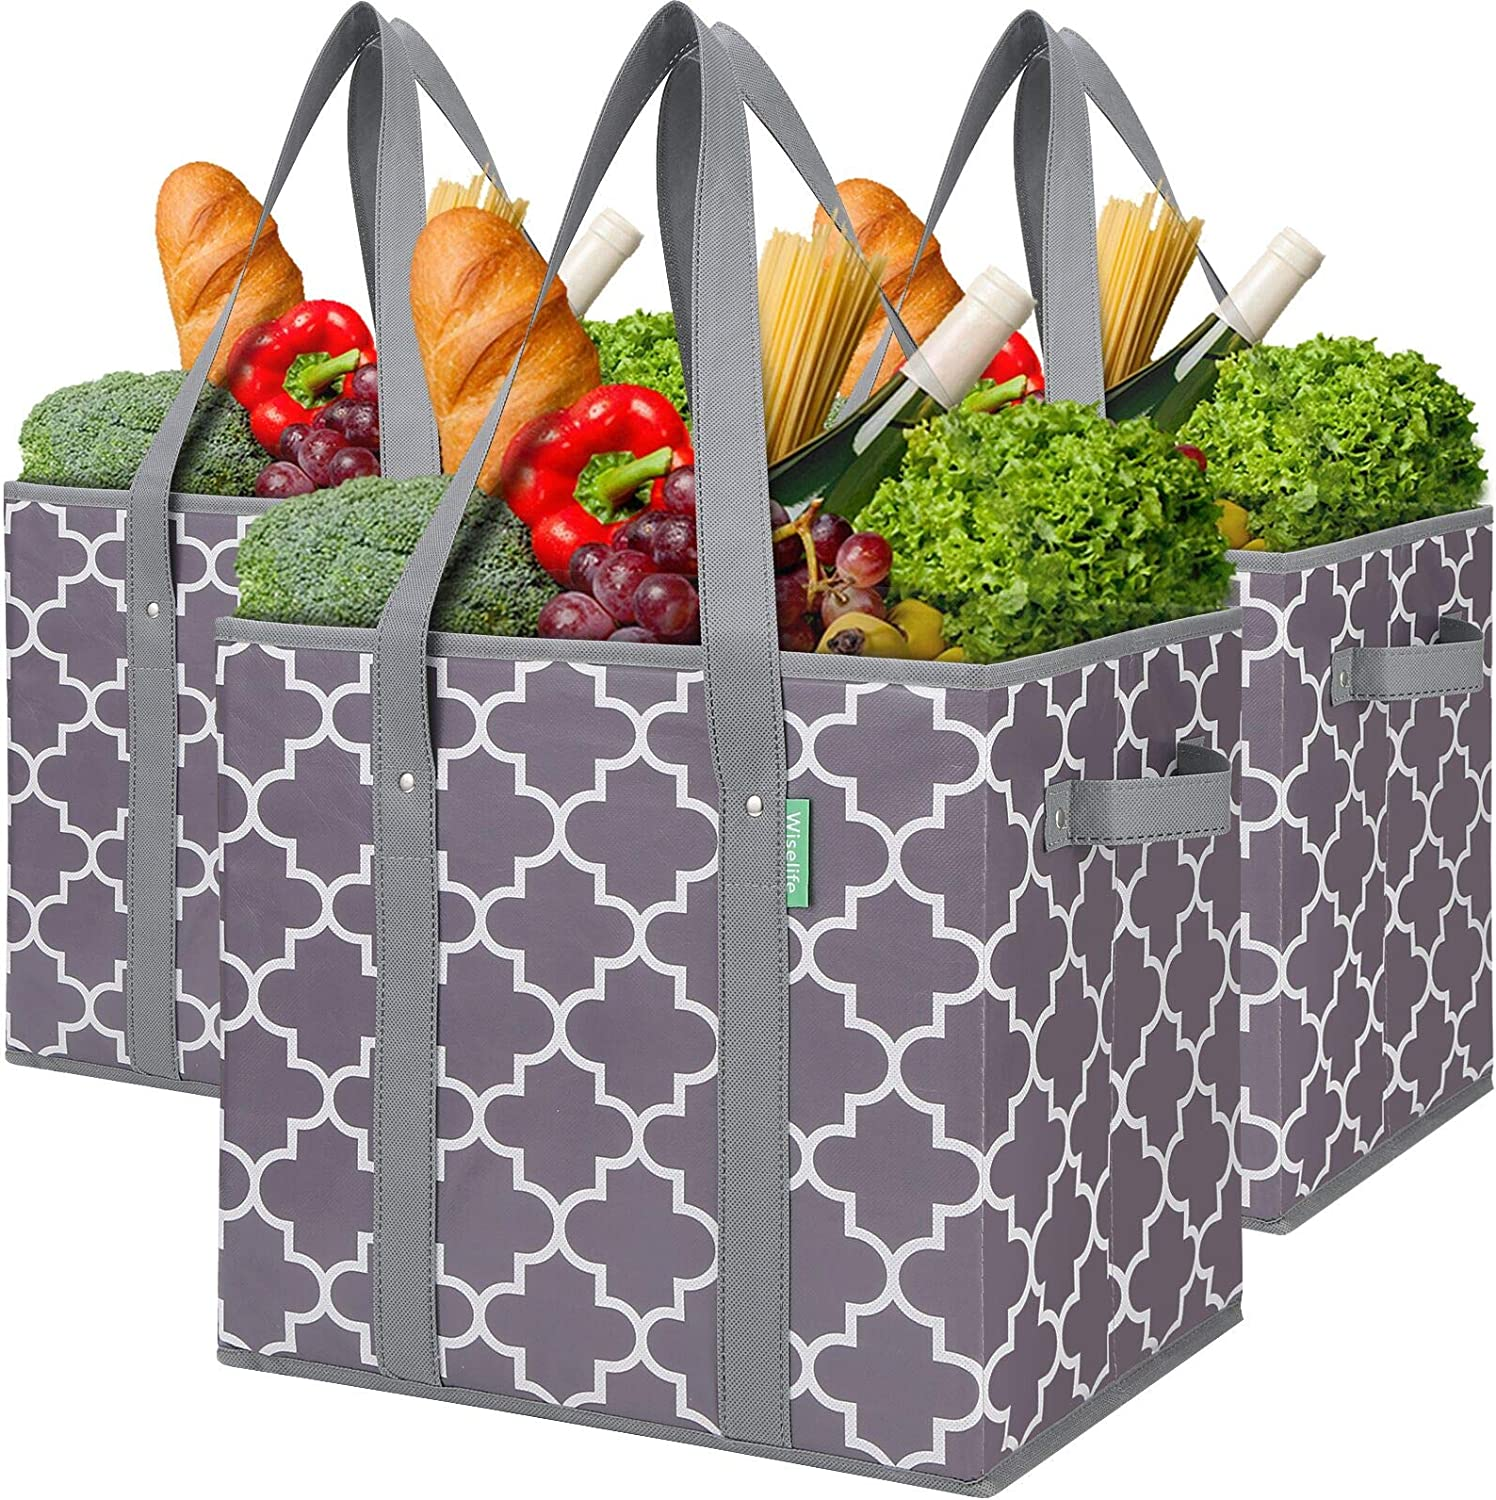 WiseLife 3-Pack Reusable Grocery Bags Foldable Washable Storage Bins Basket Water Resistant Shopping Utility Tote Bag Grey